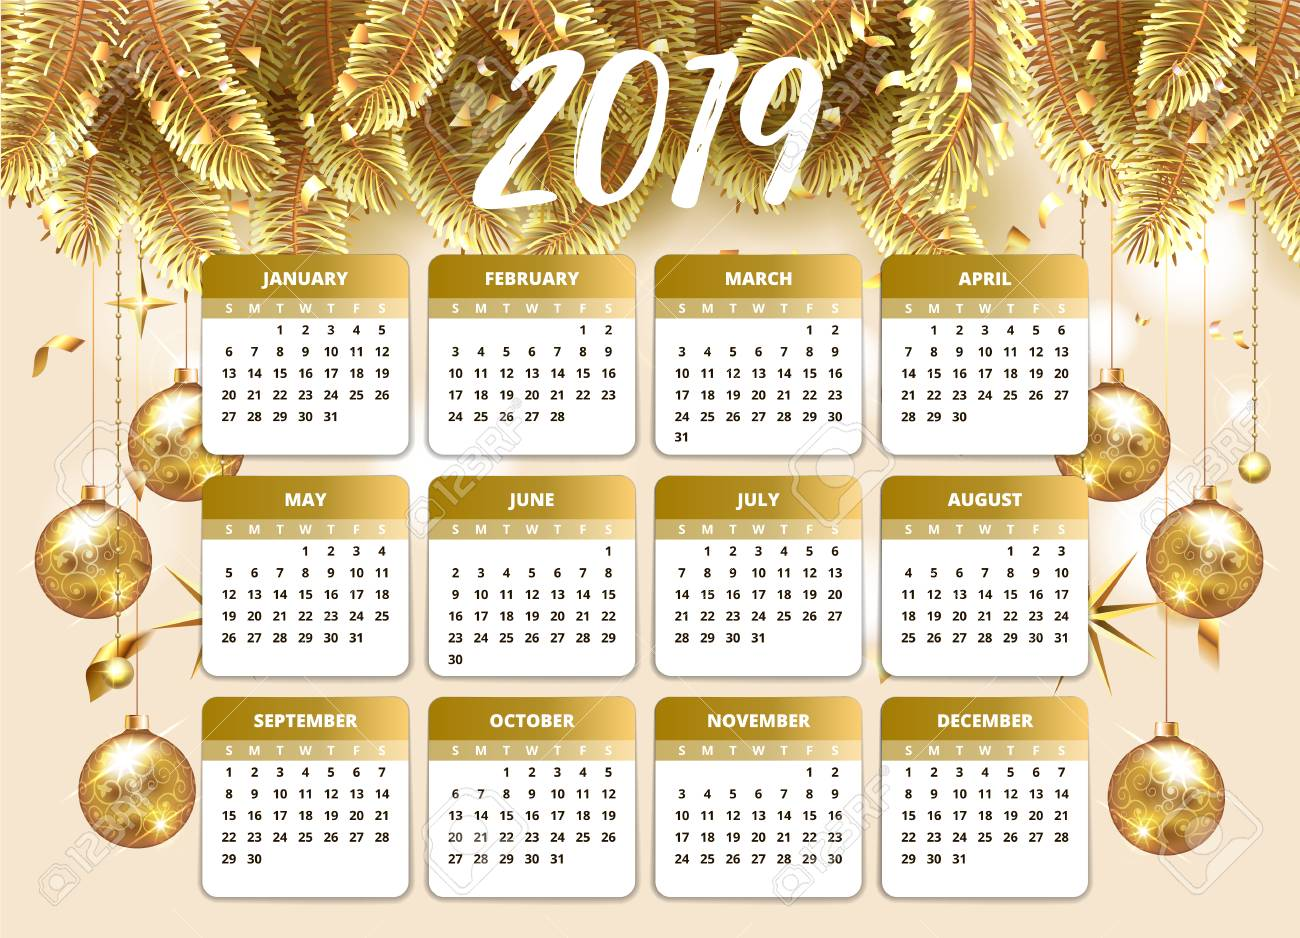 2019 Happy New Year Design Wallpaper With Calendar Planner Gold Royalty Free Cliparts Vectors And Stock Illustration Image 114918945